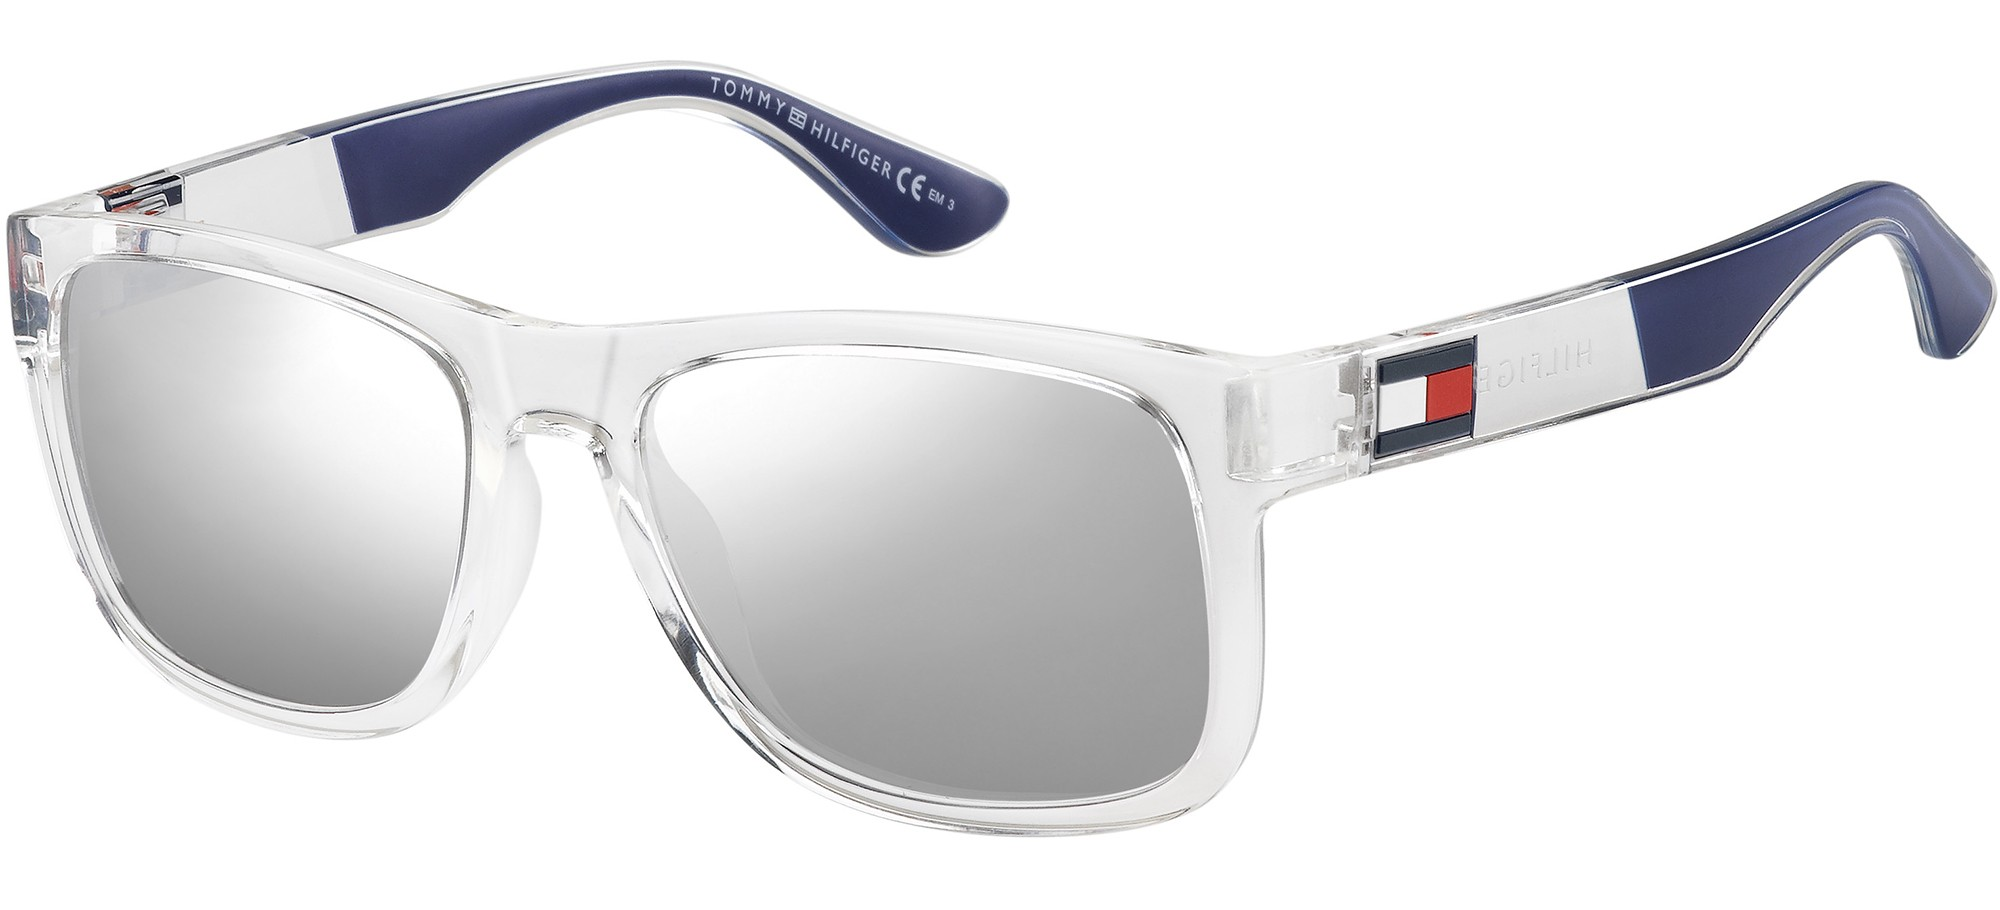 Tommy Hilfiger TH 1556/S